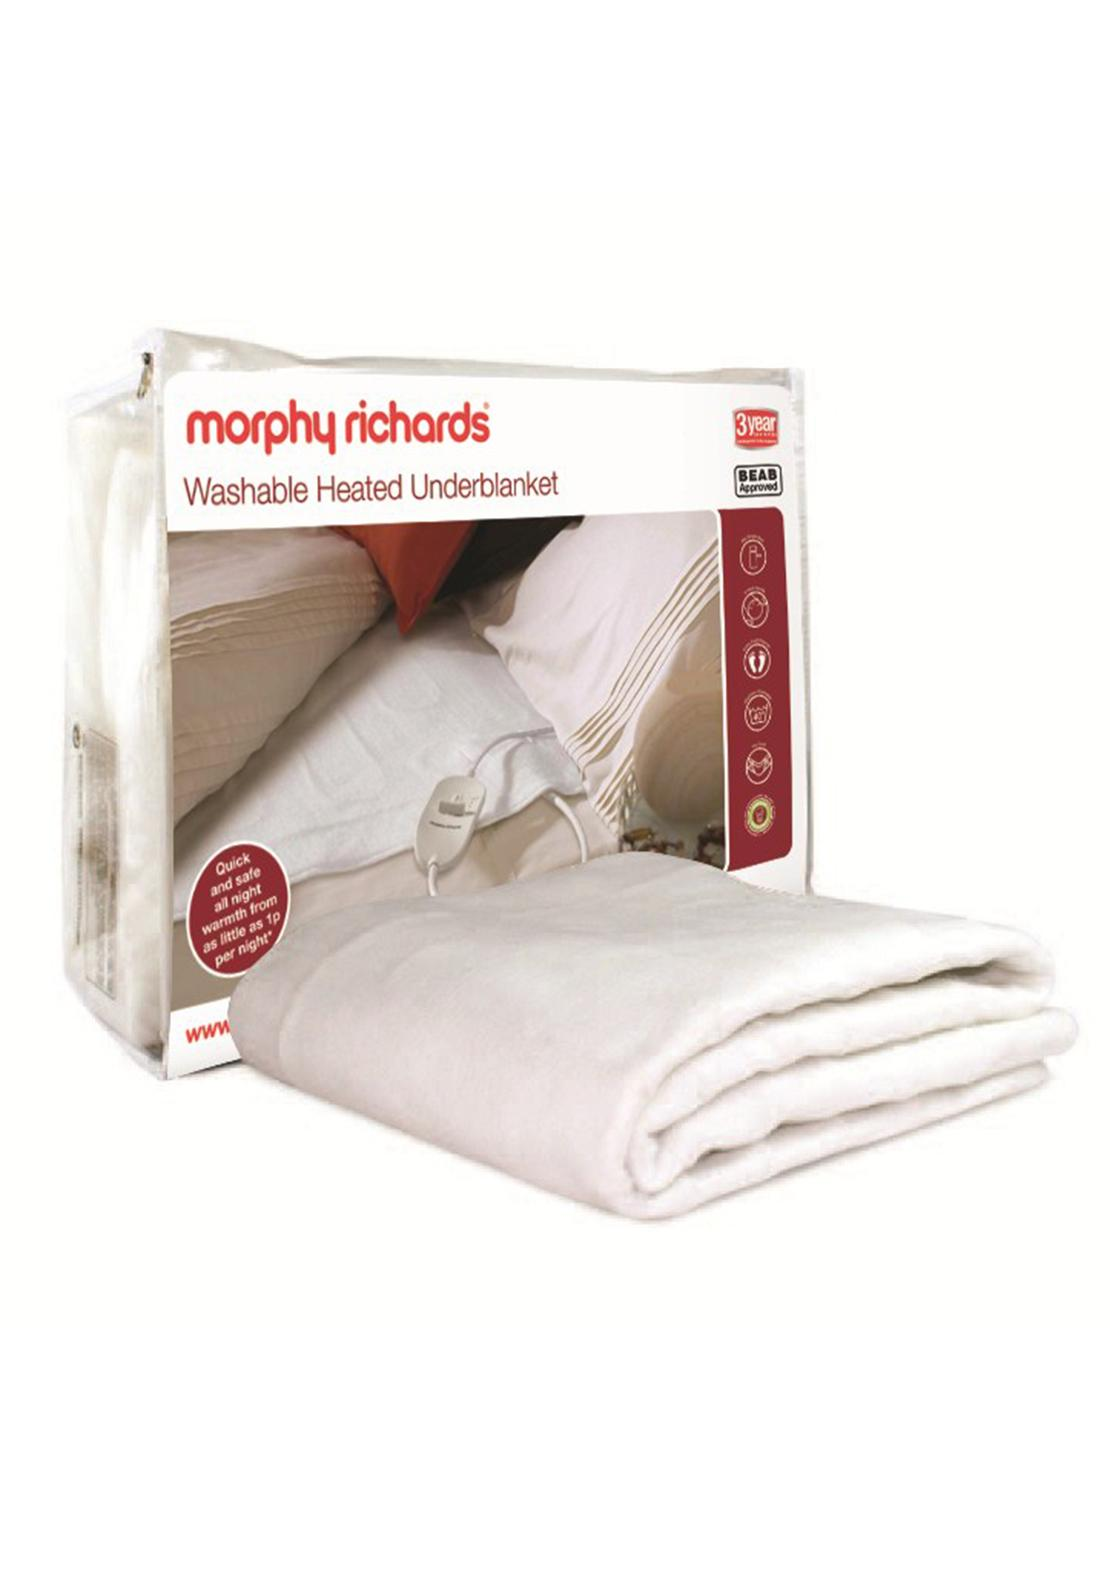 Morphy Richards Washable Heated Underblanket, Double